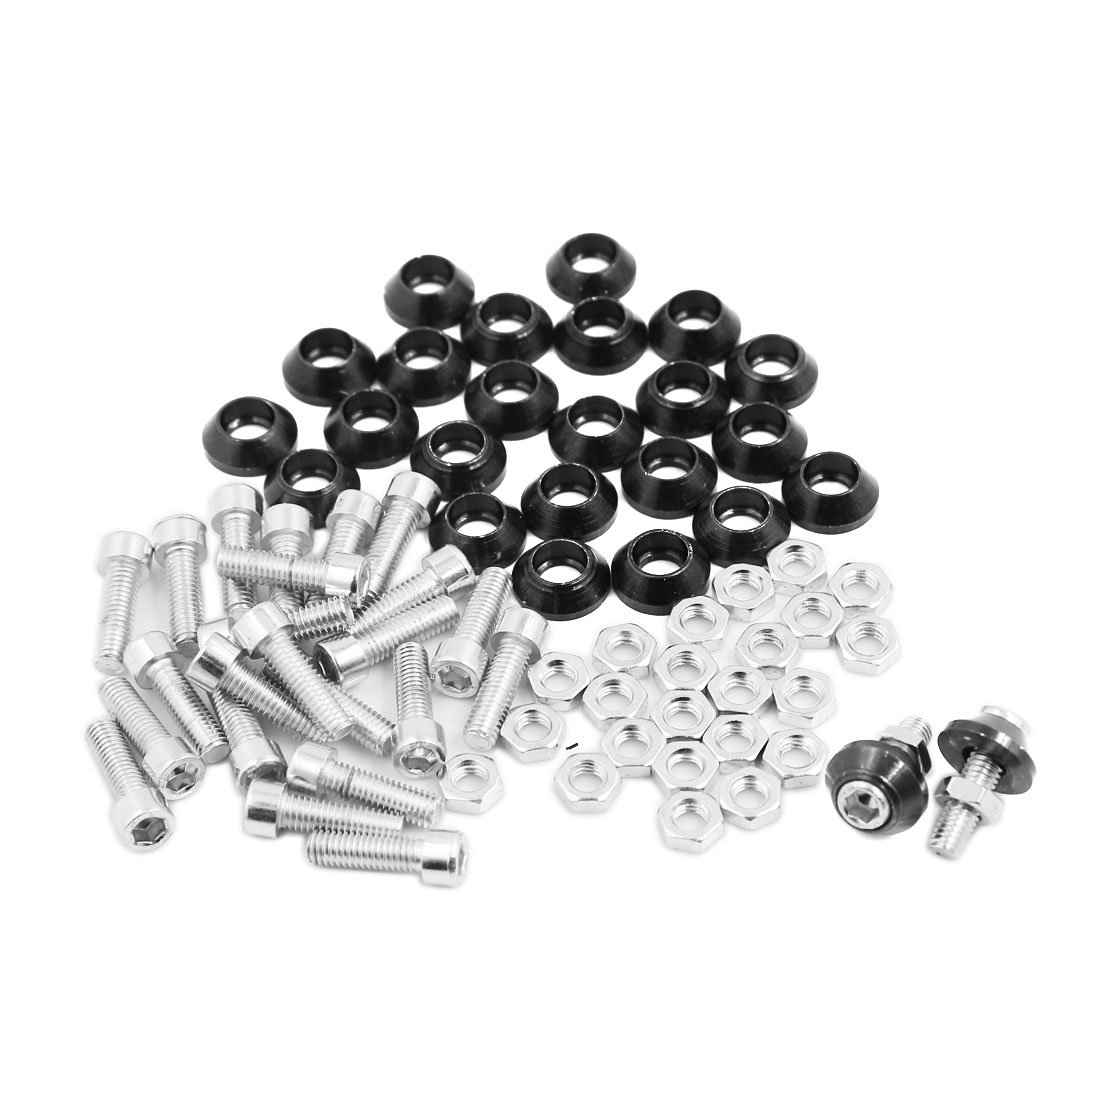 uxcell Motorcycle License Plate Frame Screw Black 25 Pcs by uxcell